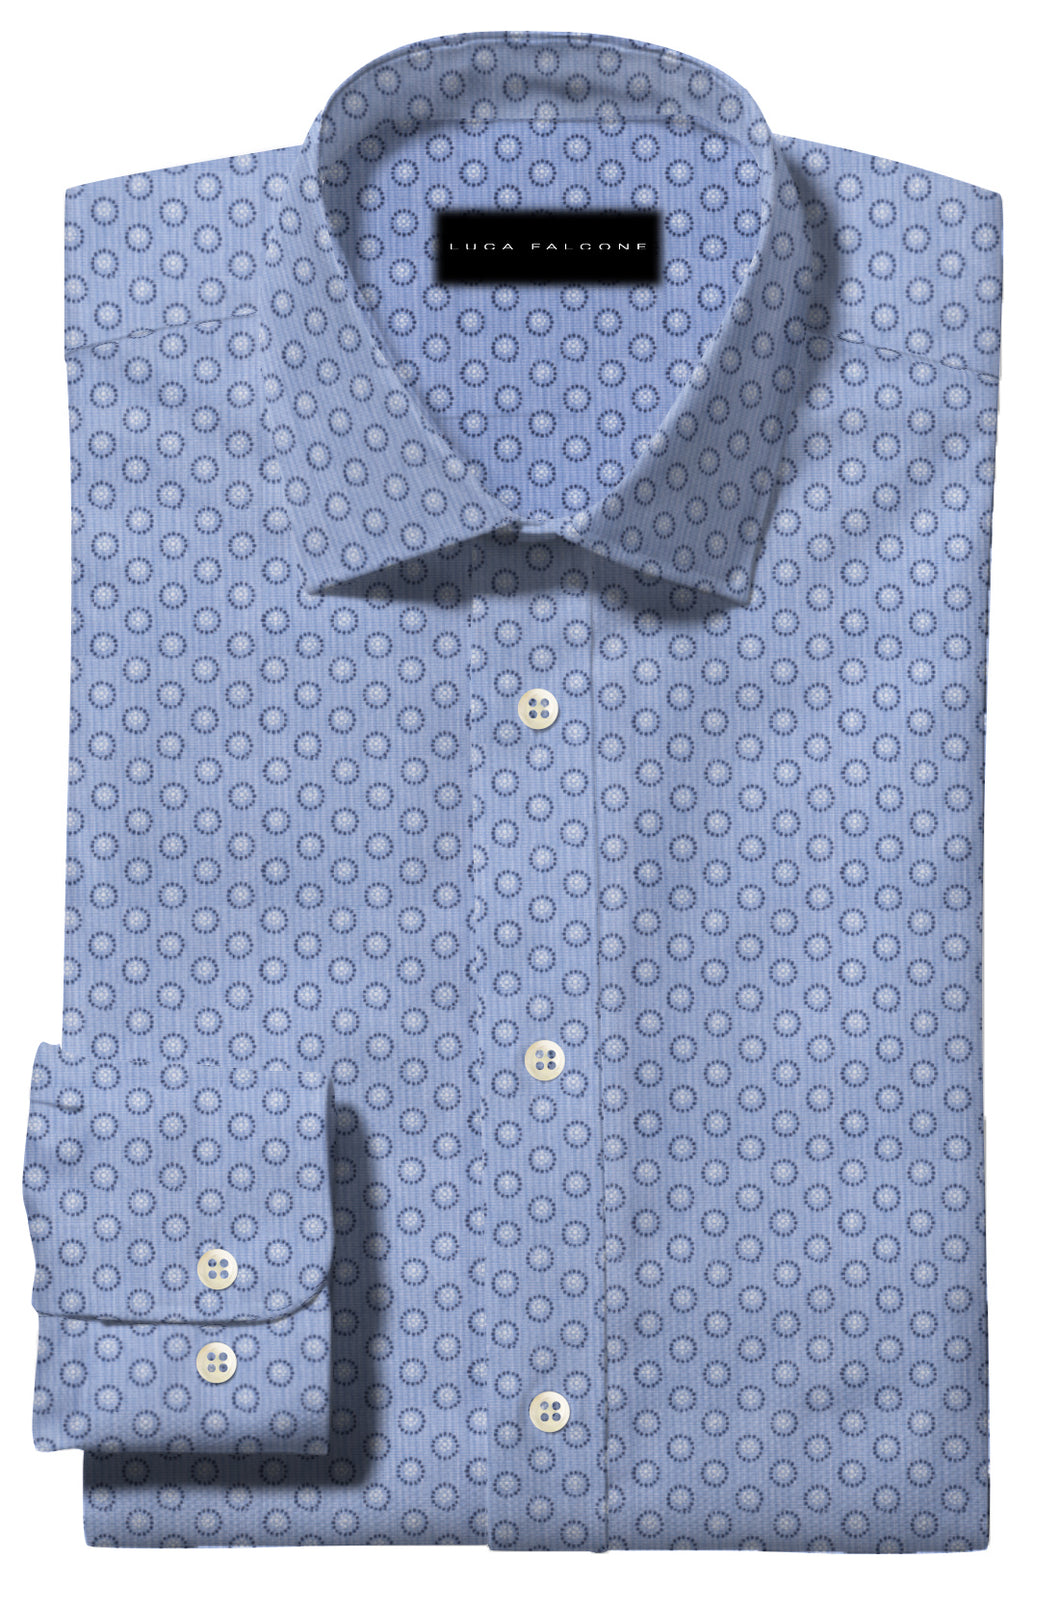 Light Blue with Dark Blue Circle Pattern